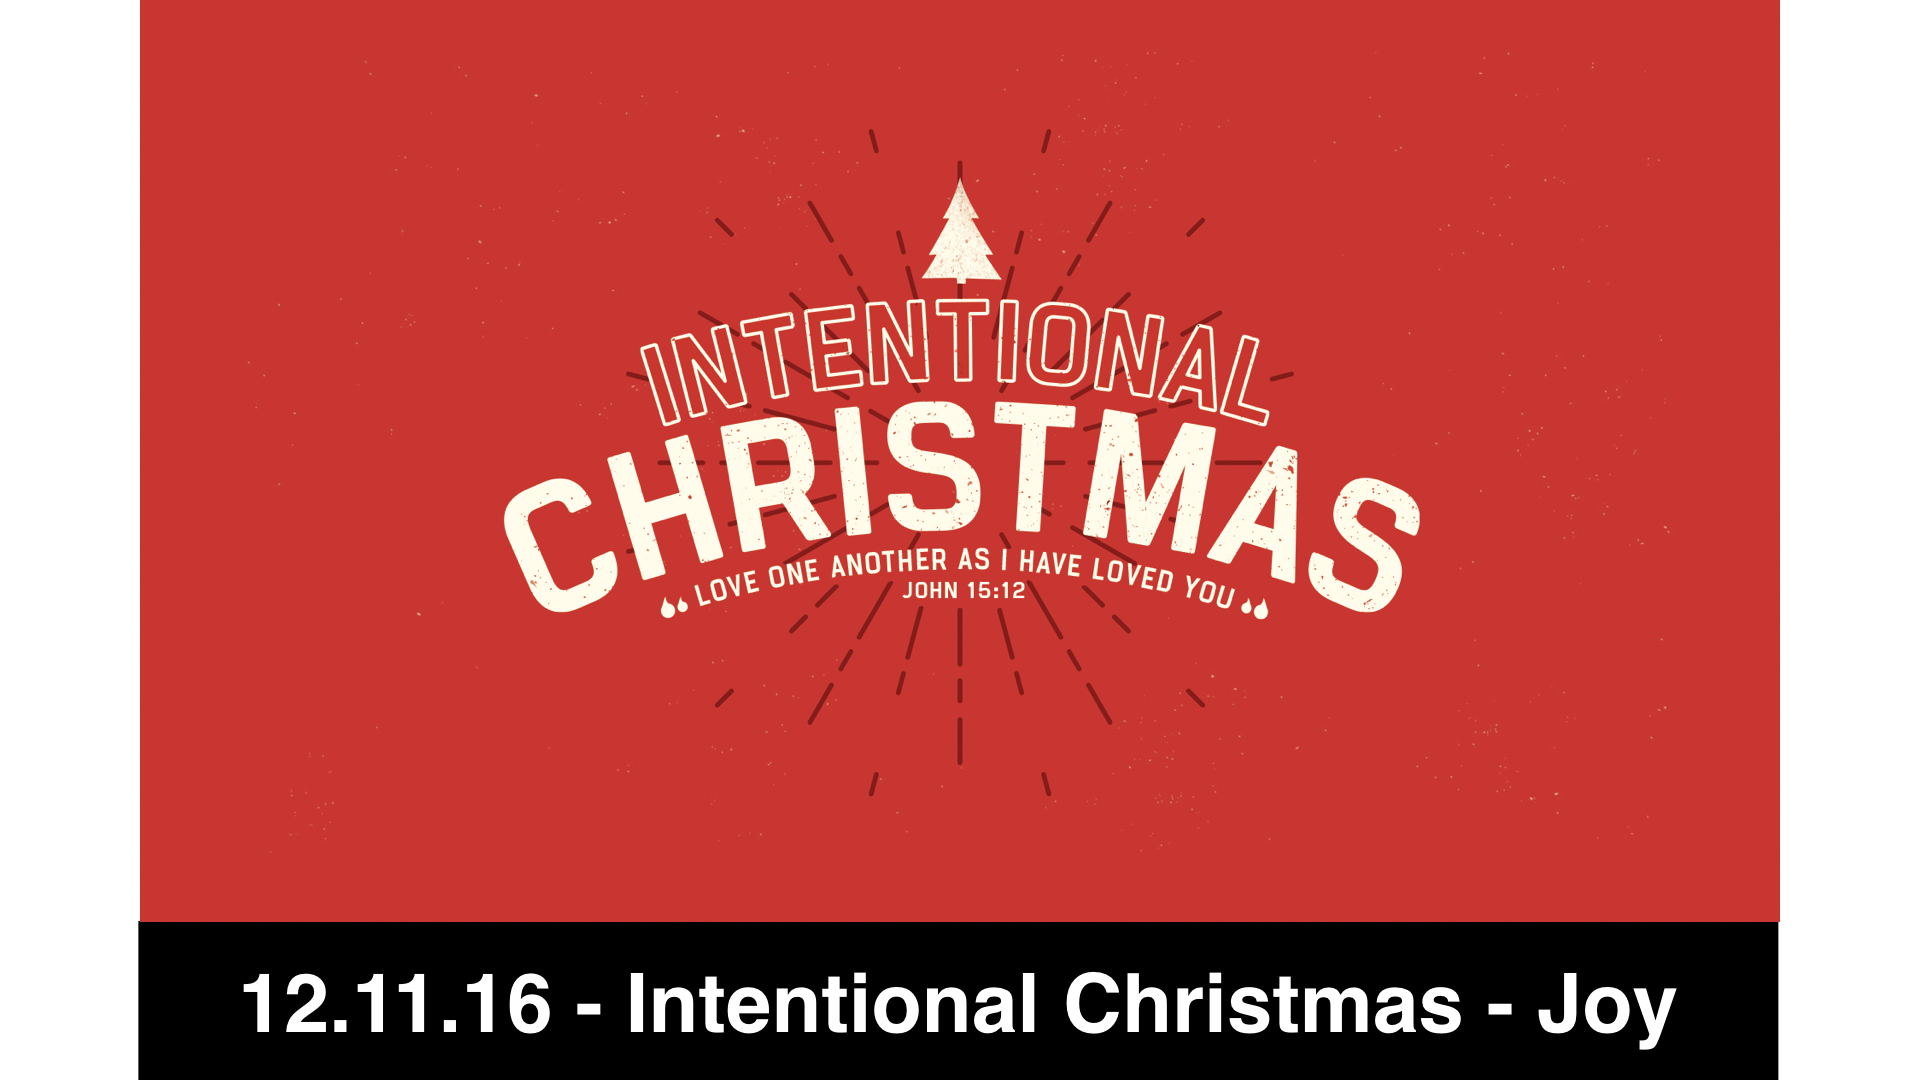 12-11-16 Intentional Christmas - Joy